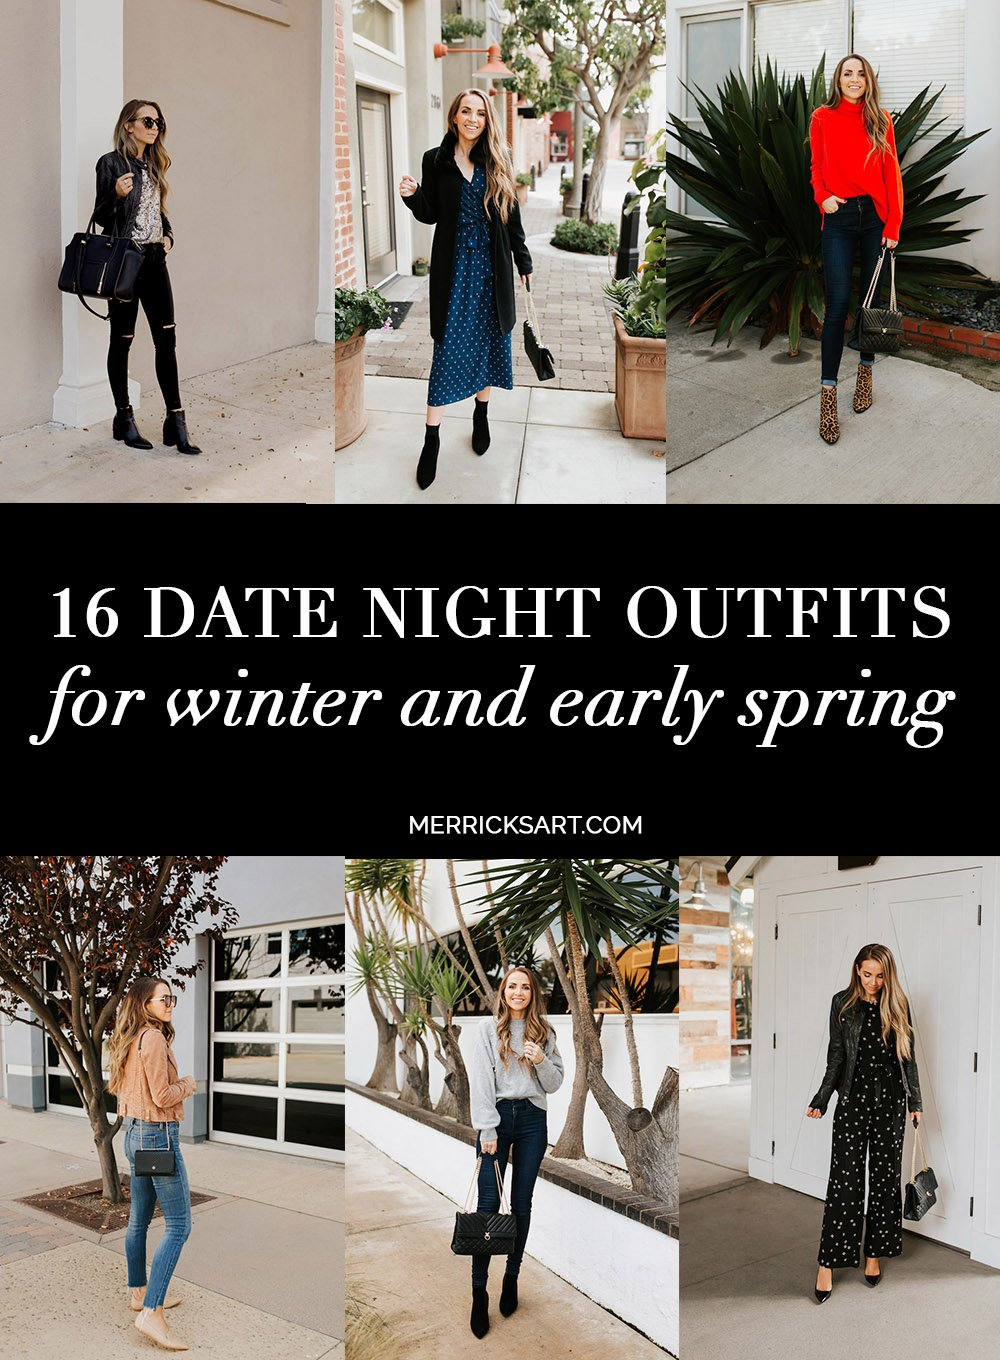 16 date night outfits for winter and early spring